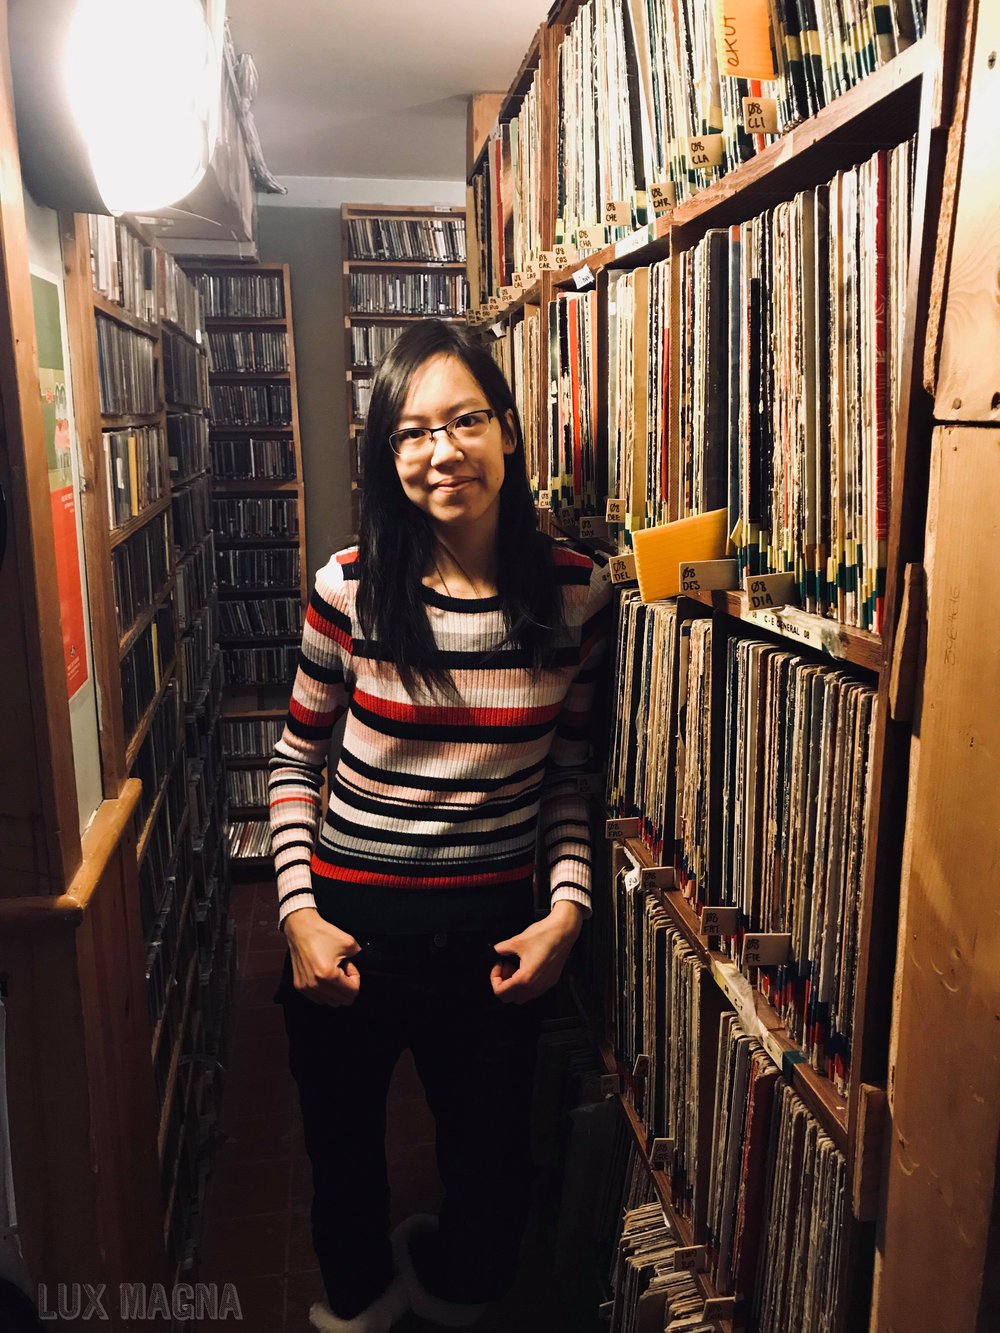 This was Karen Chung's 1st Canadian radio interview!